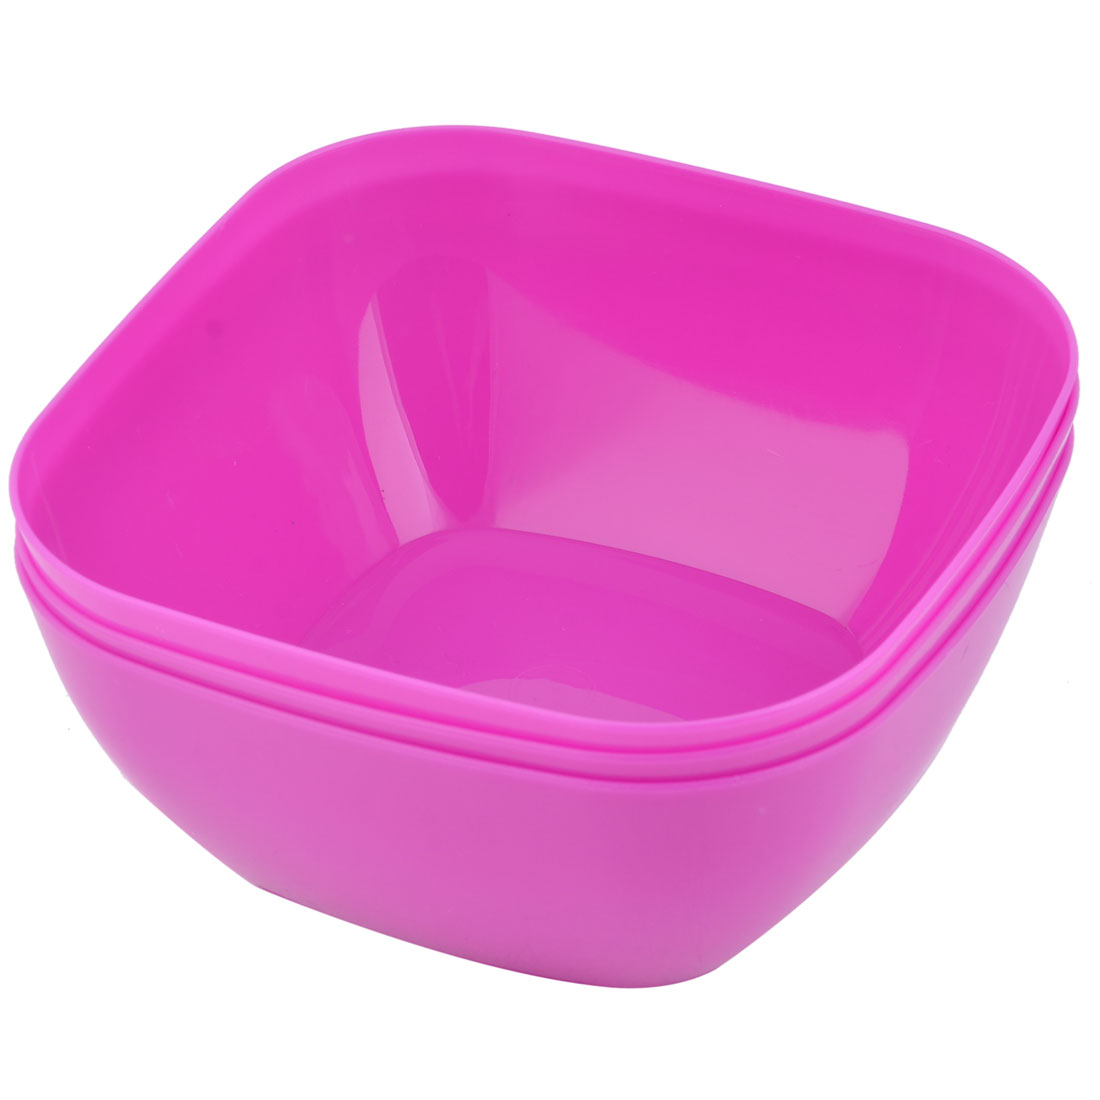 Home Refrigerator Plastic Square Fruit Foods Container Snacks Bowl Fuchsia 3pcs